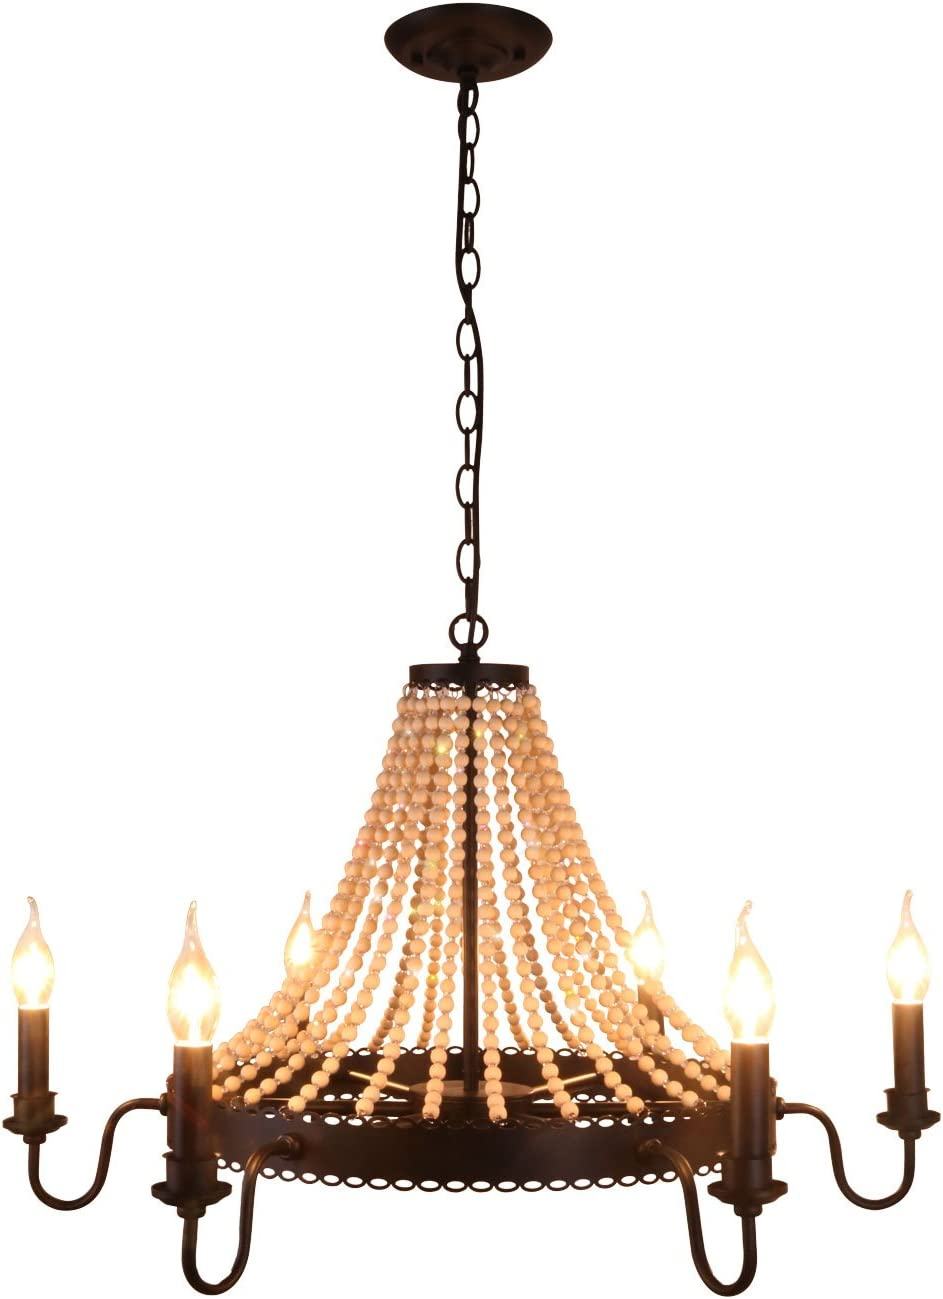 Unitary Brand Antique Black Metal and Wood Beads Decoration Wheel Candle Chandelier with 6 E12 Bulb Sockets 240W Painted Finish